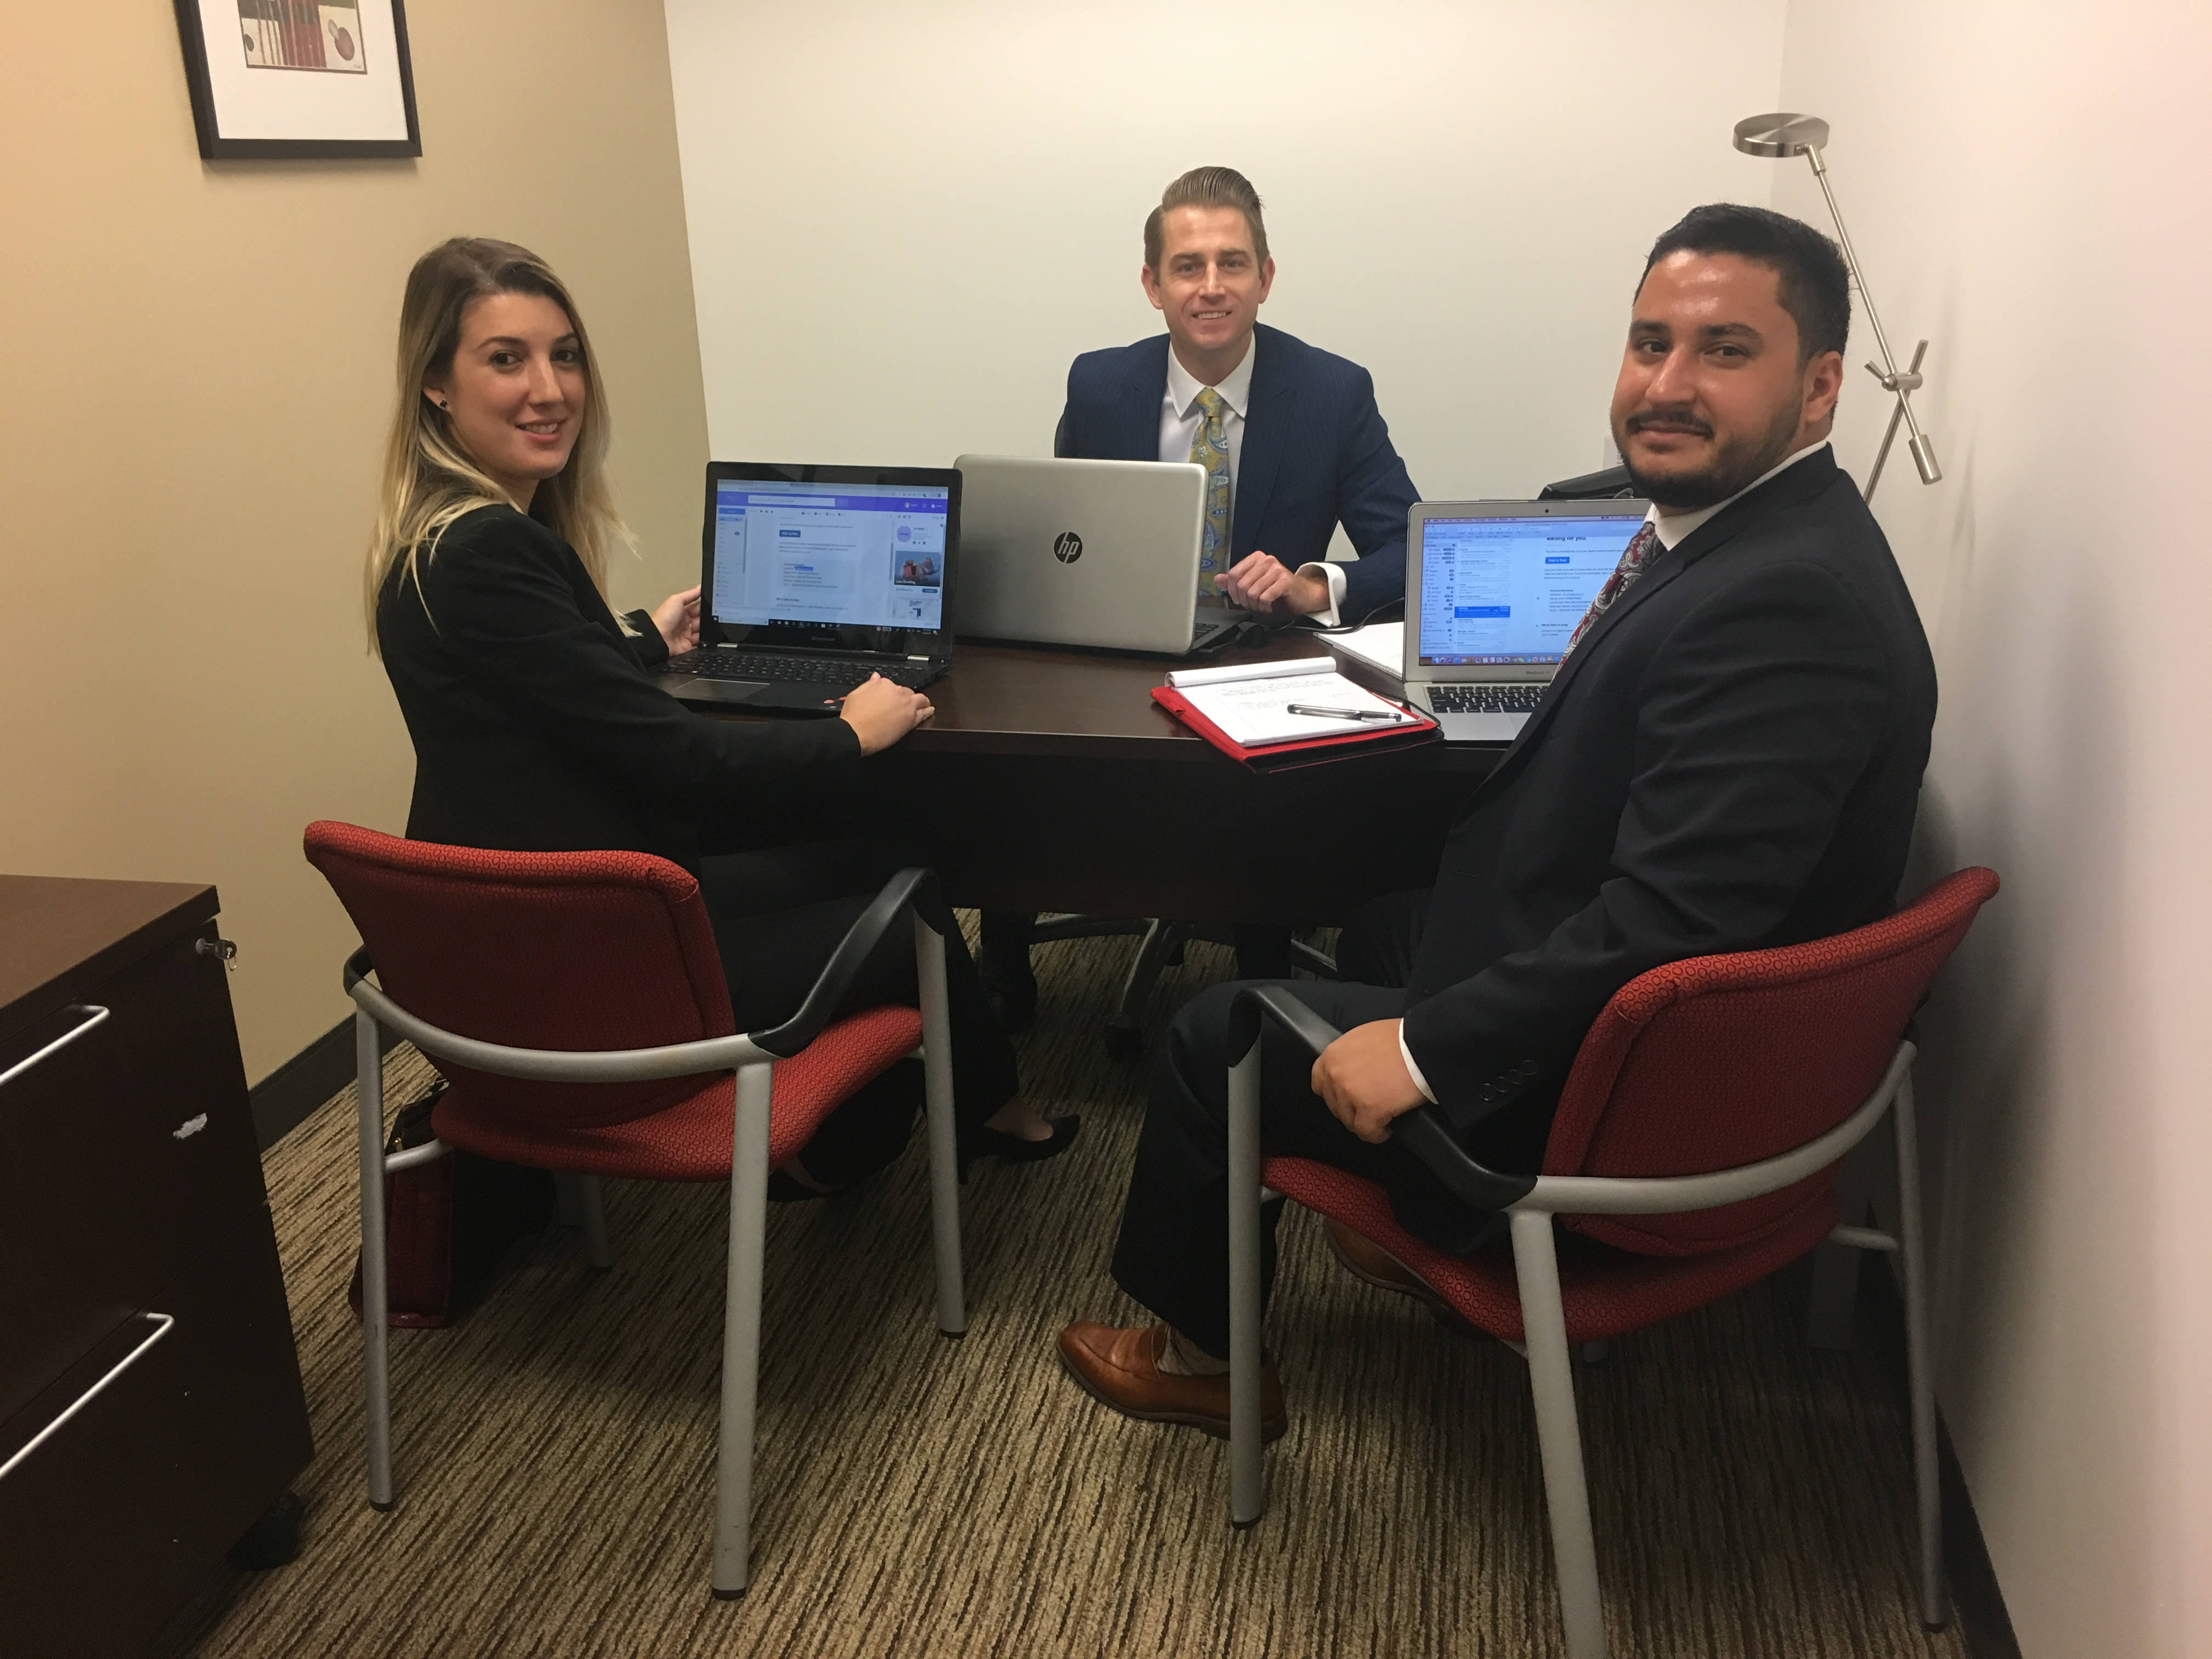 international tax advisors inc. miami ft. lauderdale doral international tax accountant CPA 2019 interns 2 sit